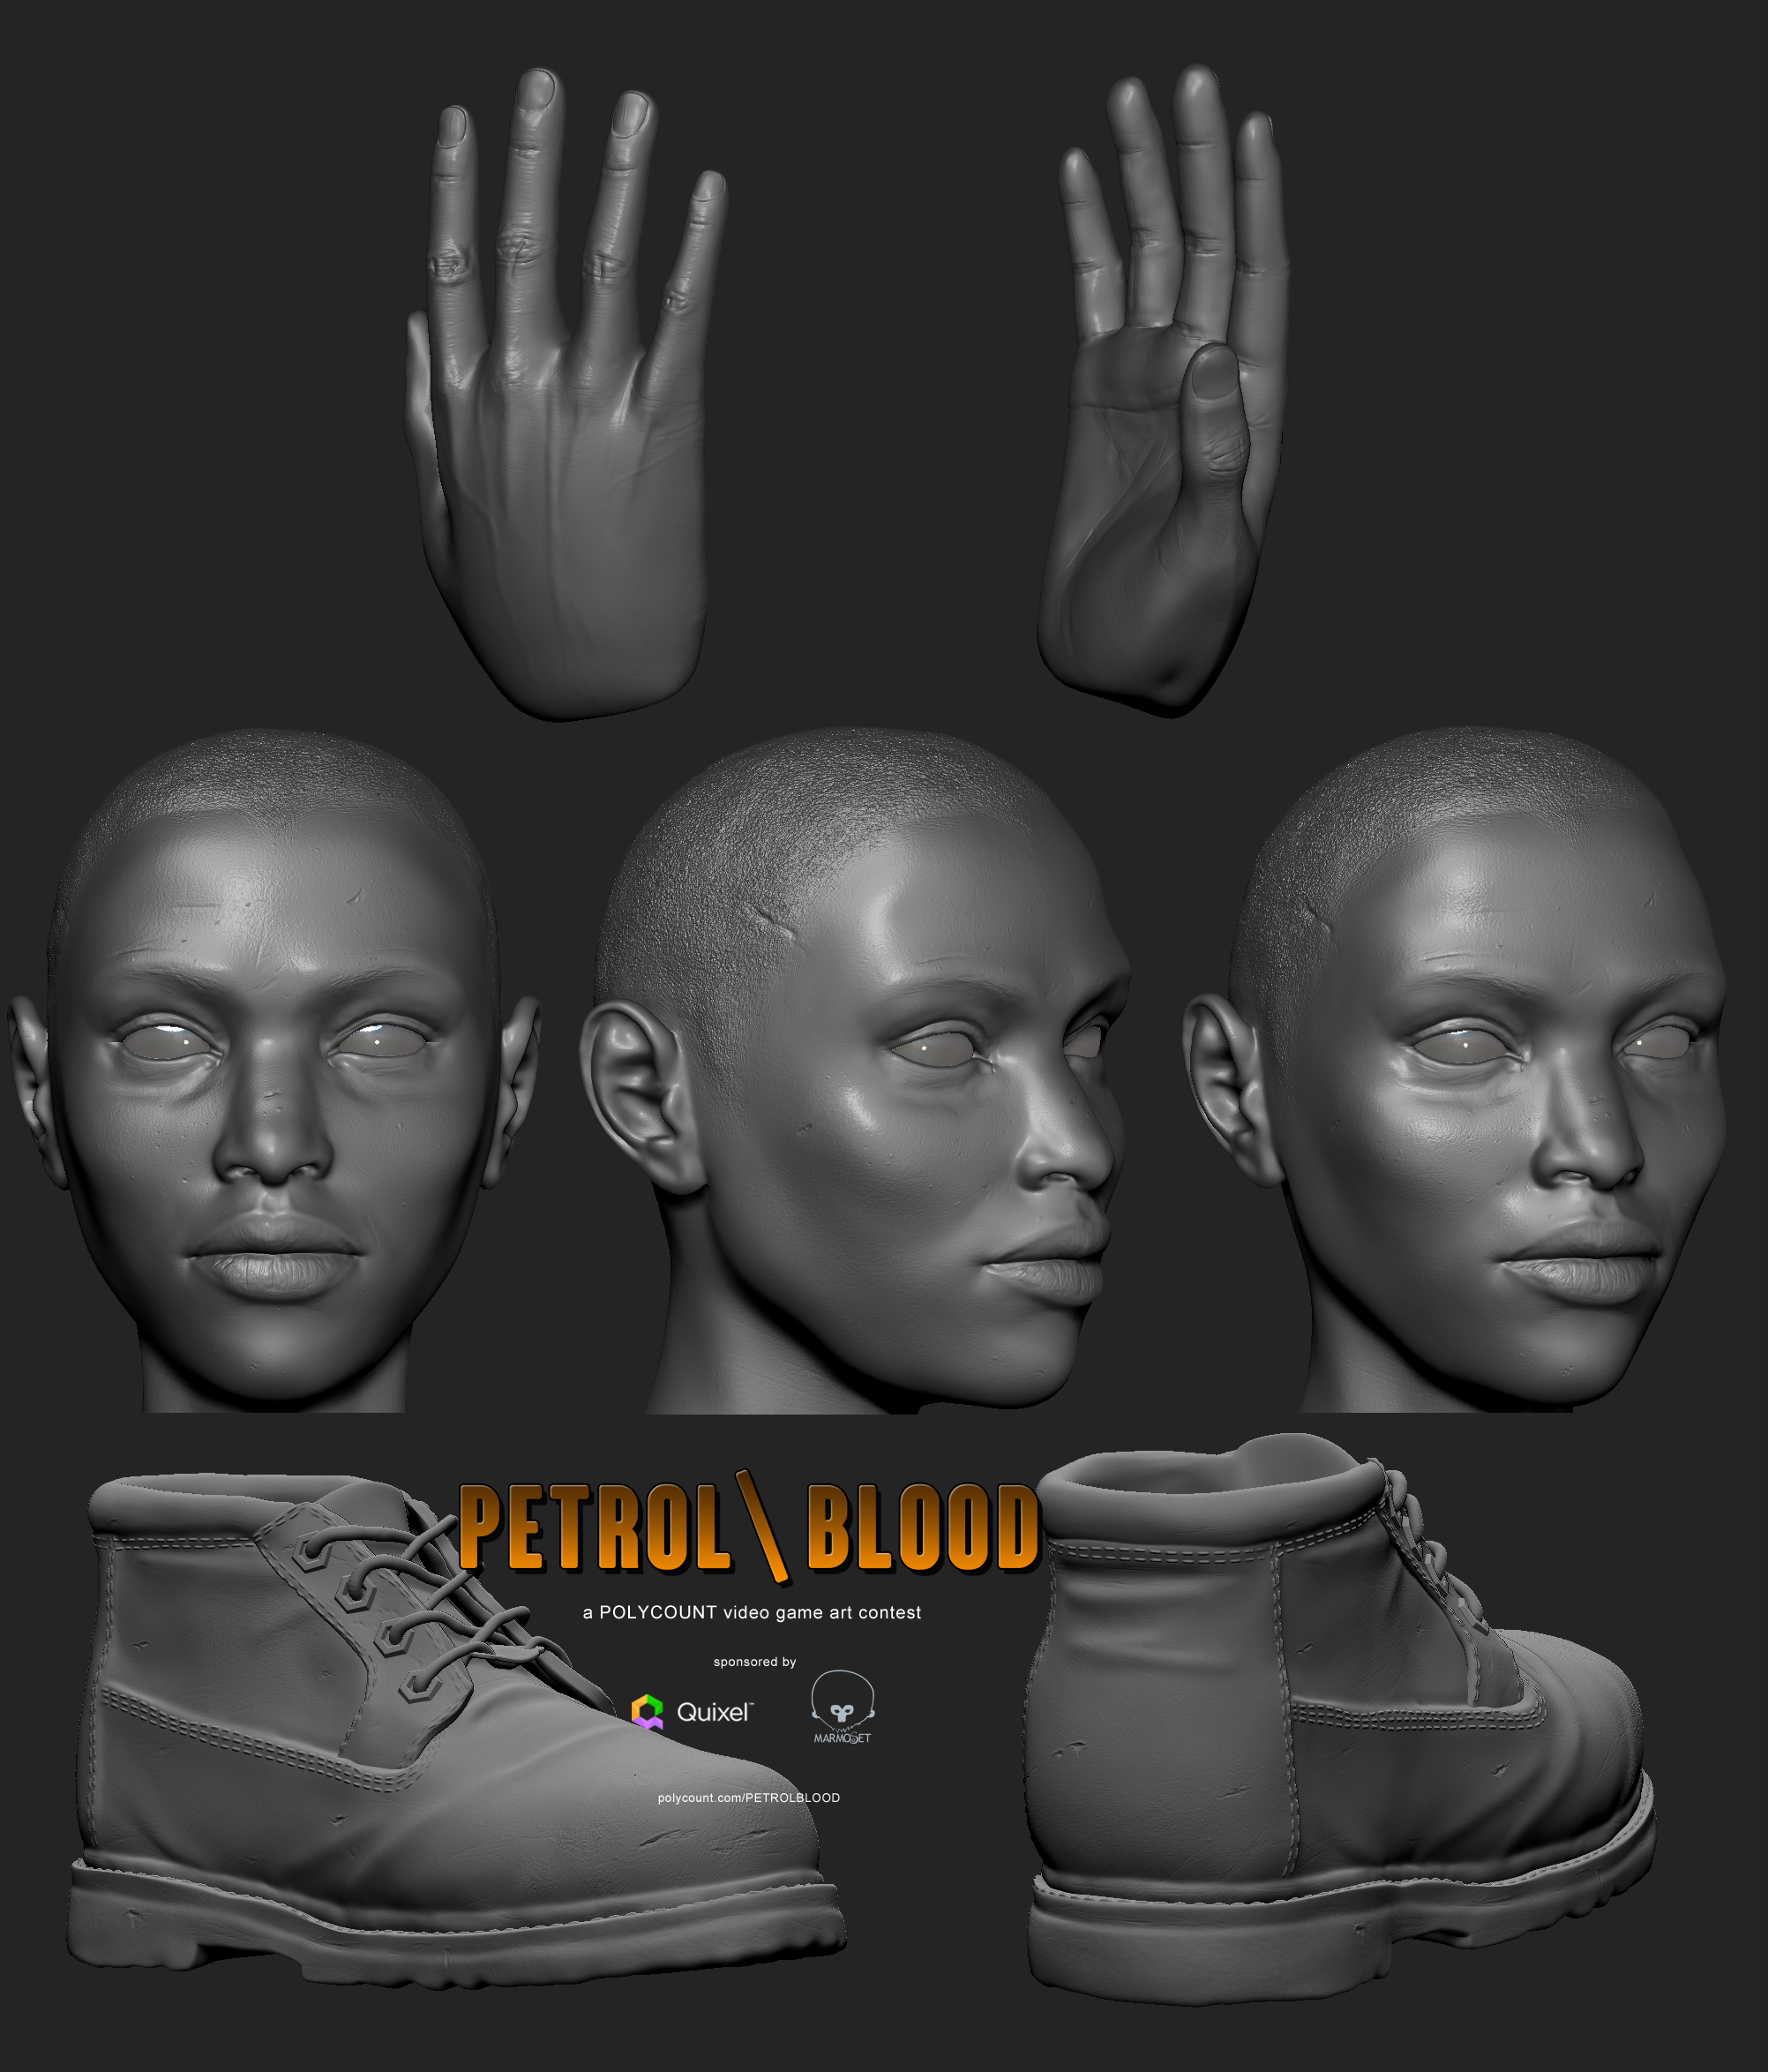 petroblood_wip_03_headhandsboots_by_theartistictiger-d7ra78i.jpg